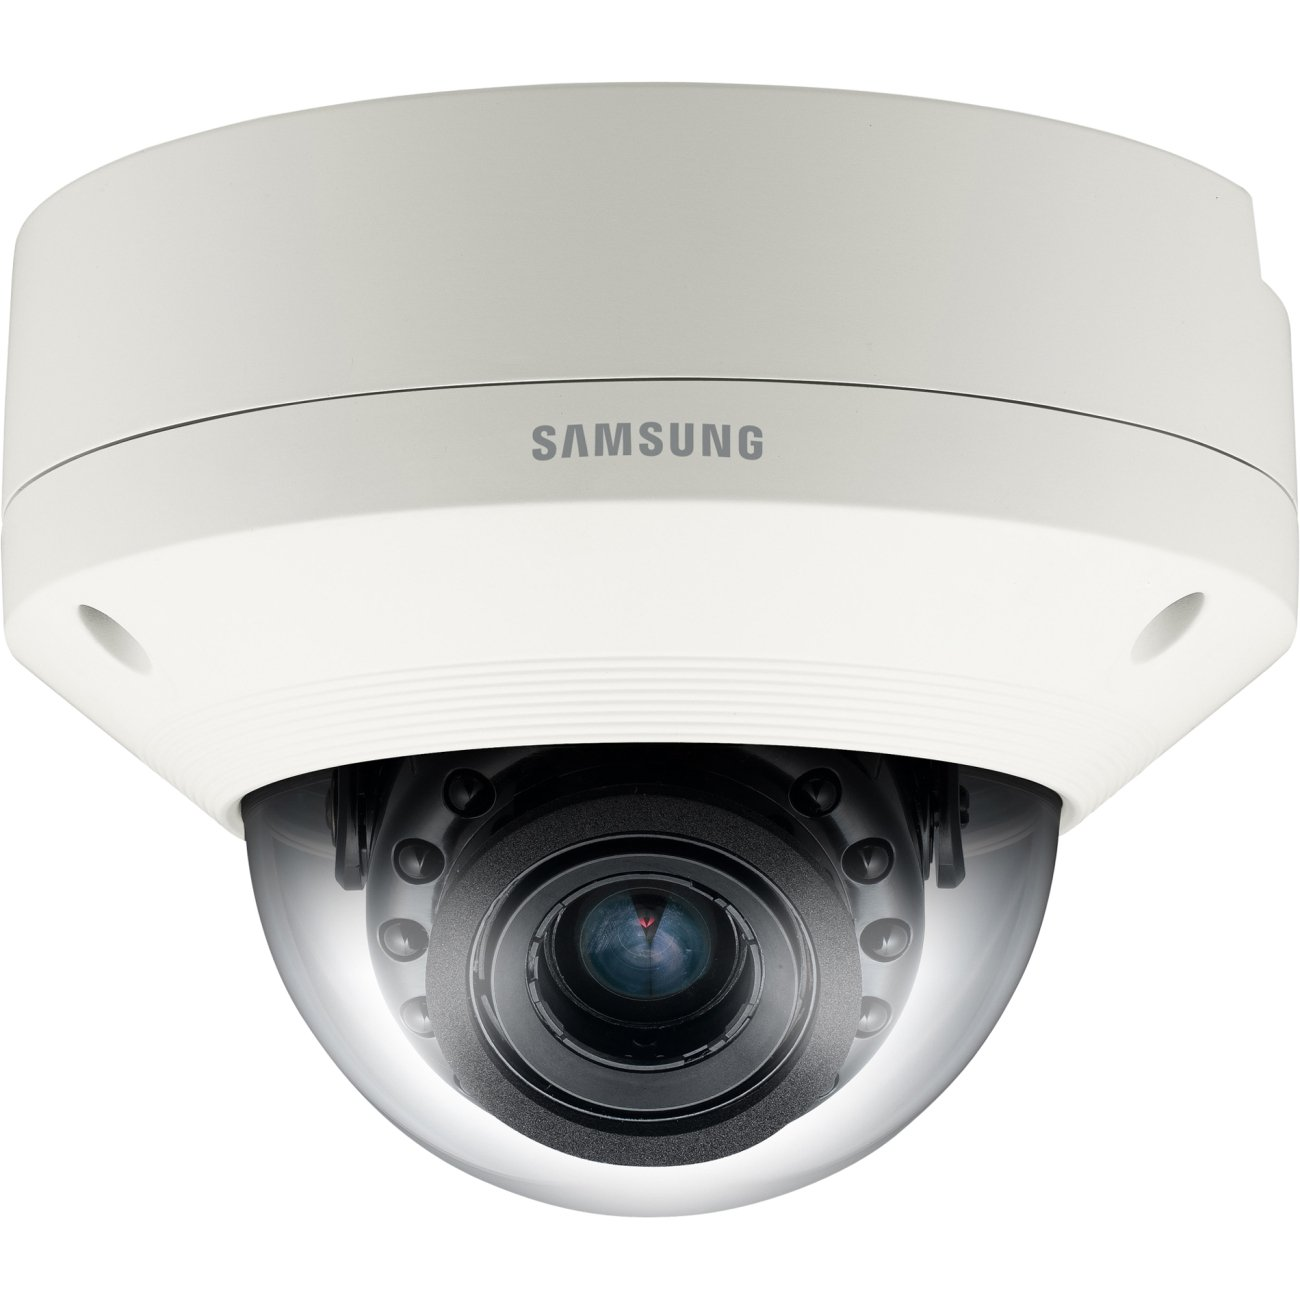 Samsung Snv-6084 Security Camera